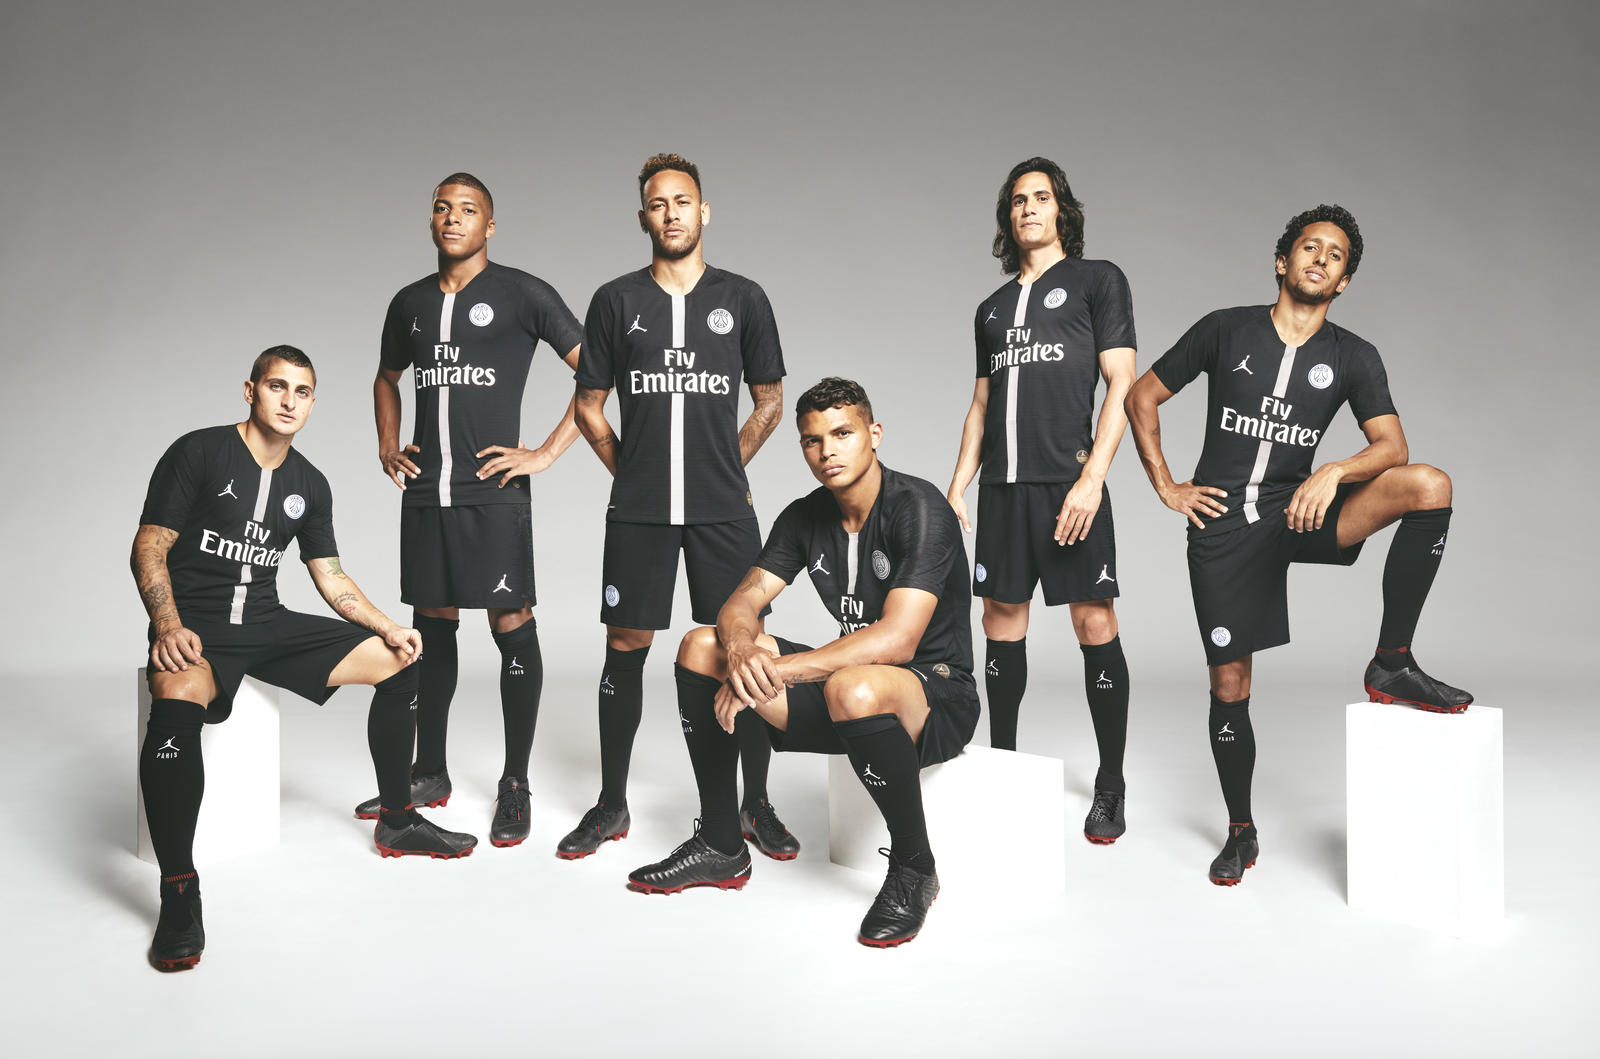 Jordan, PSG, Matthew Wolff, Paris, Kit, Jumpman, Mbappe, Neymar, Design